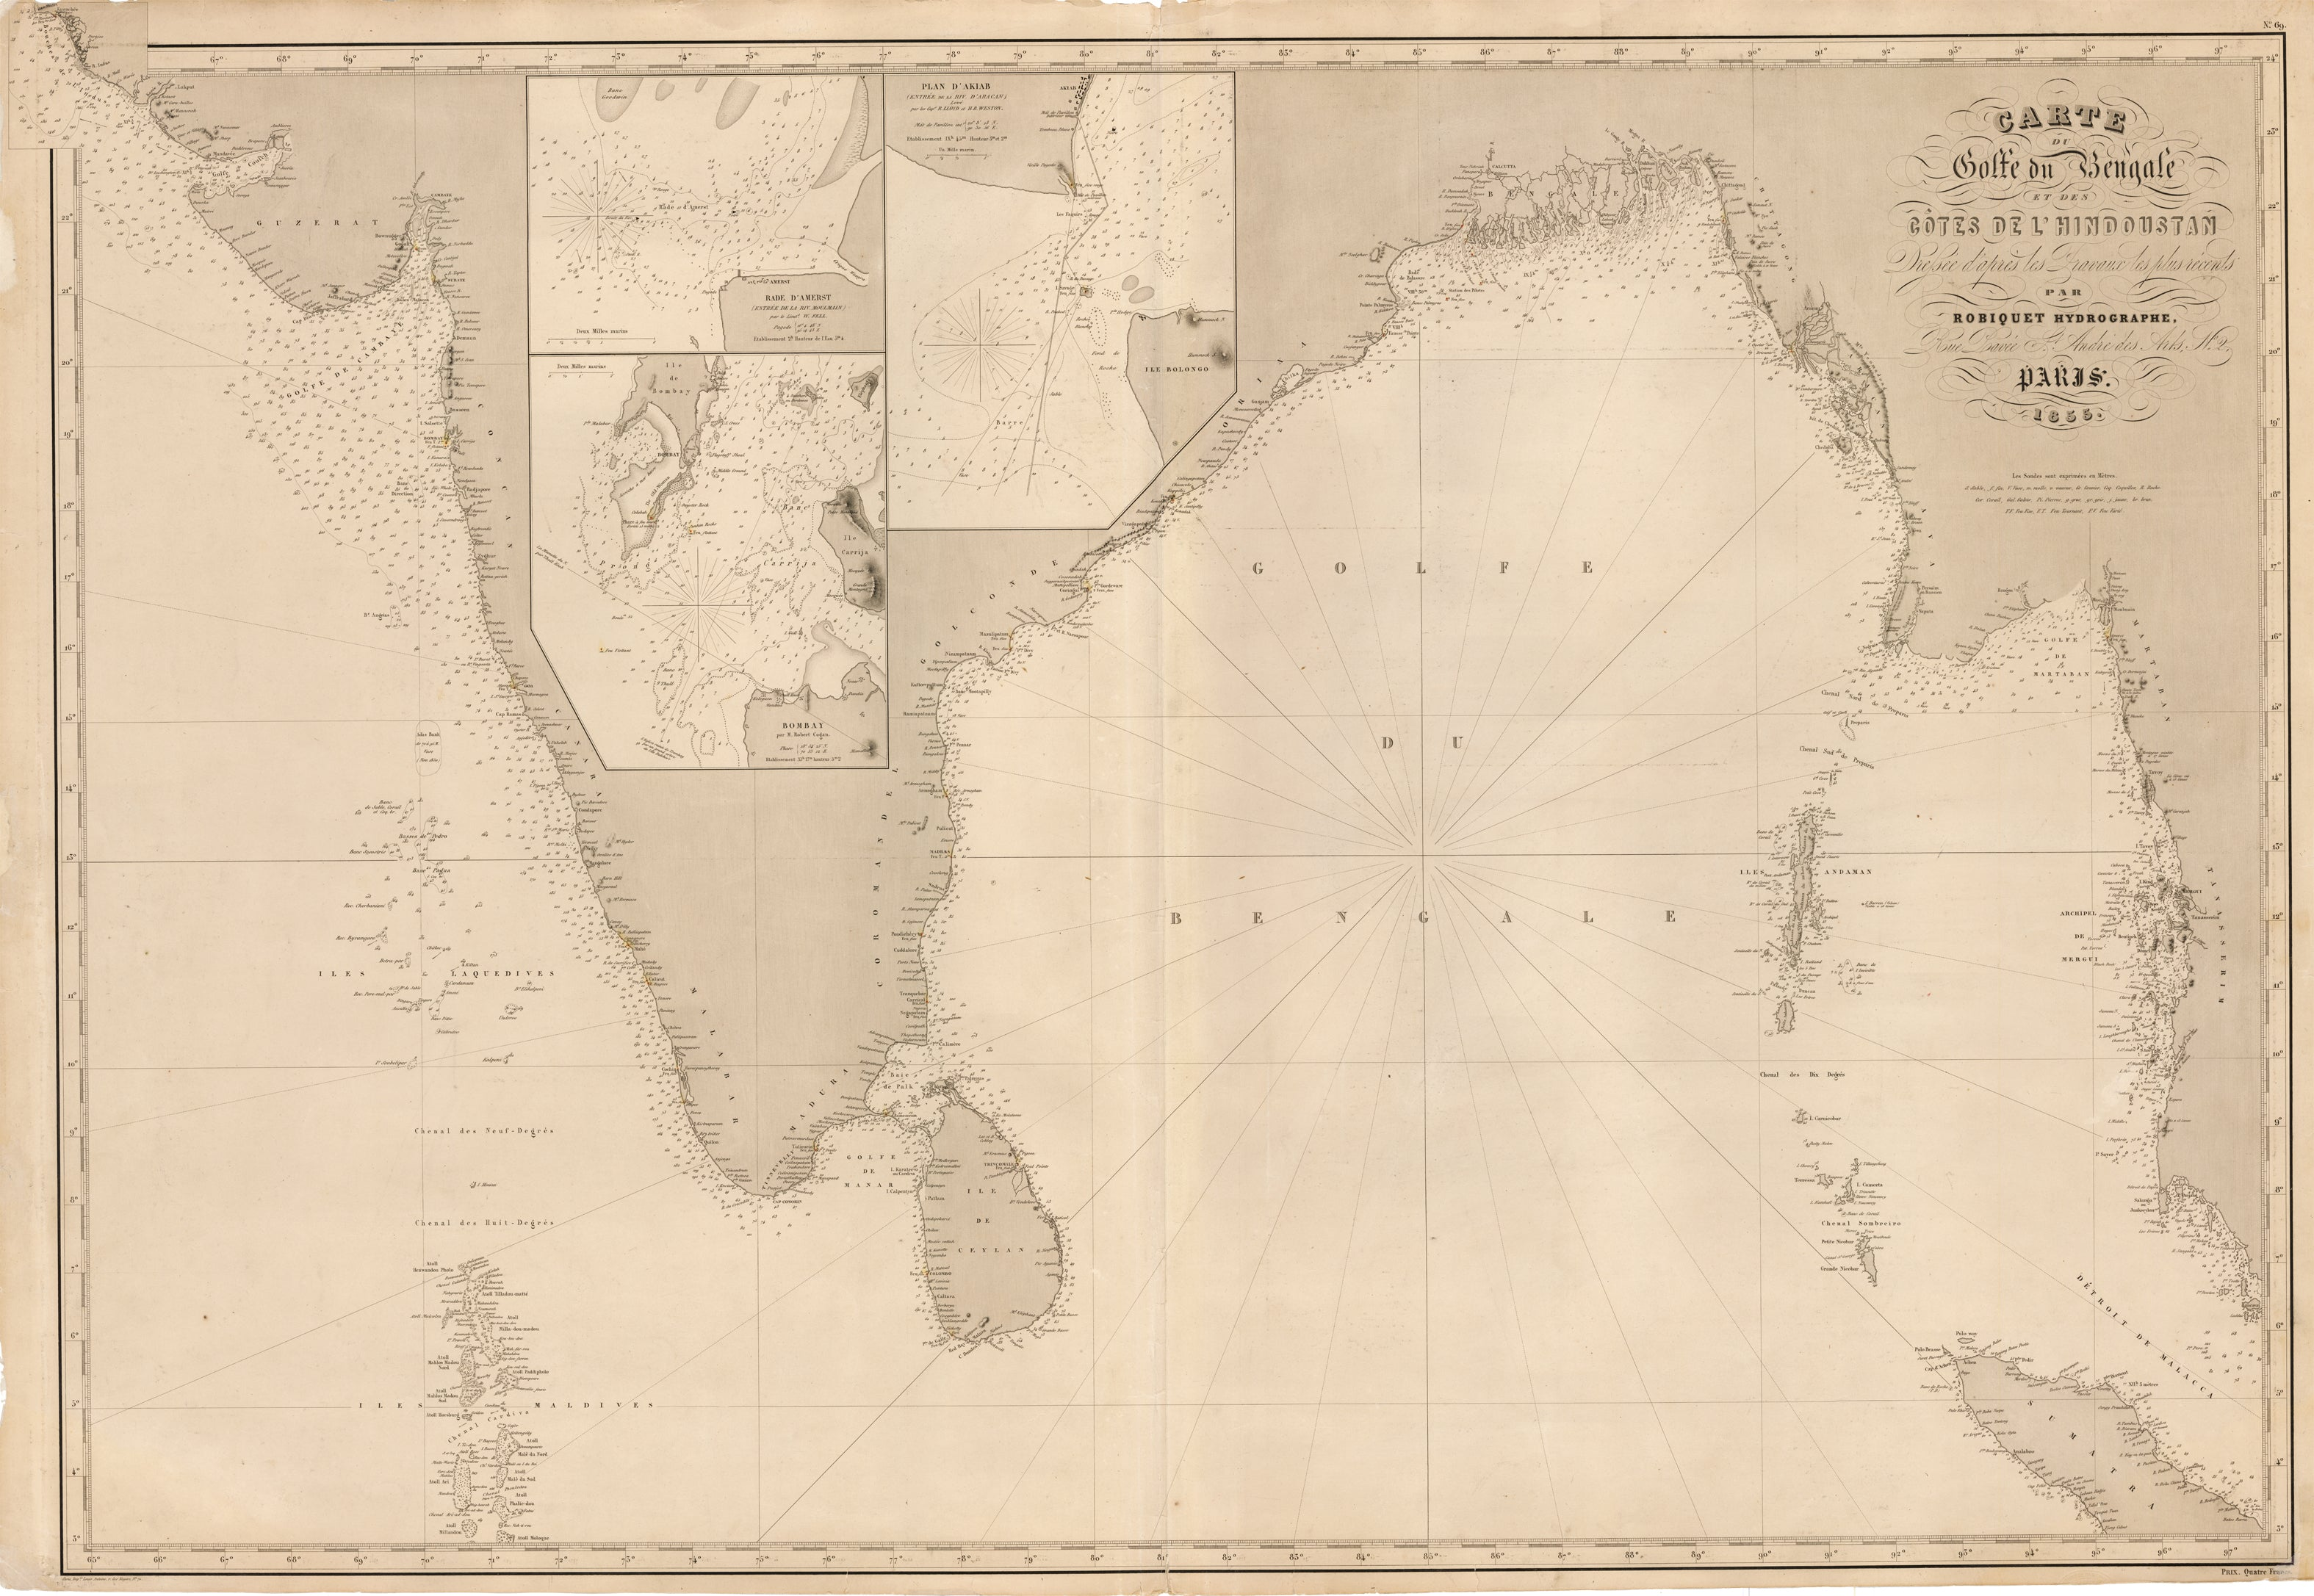 Antique Sea Chart of the Indian Ocean and Gulf of Bengal - Carte du Golfe du Bengale et des Cotes de l'Hindoustan